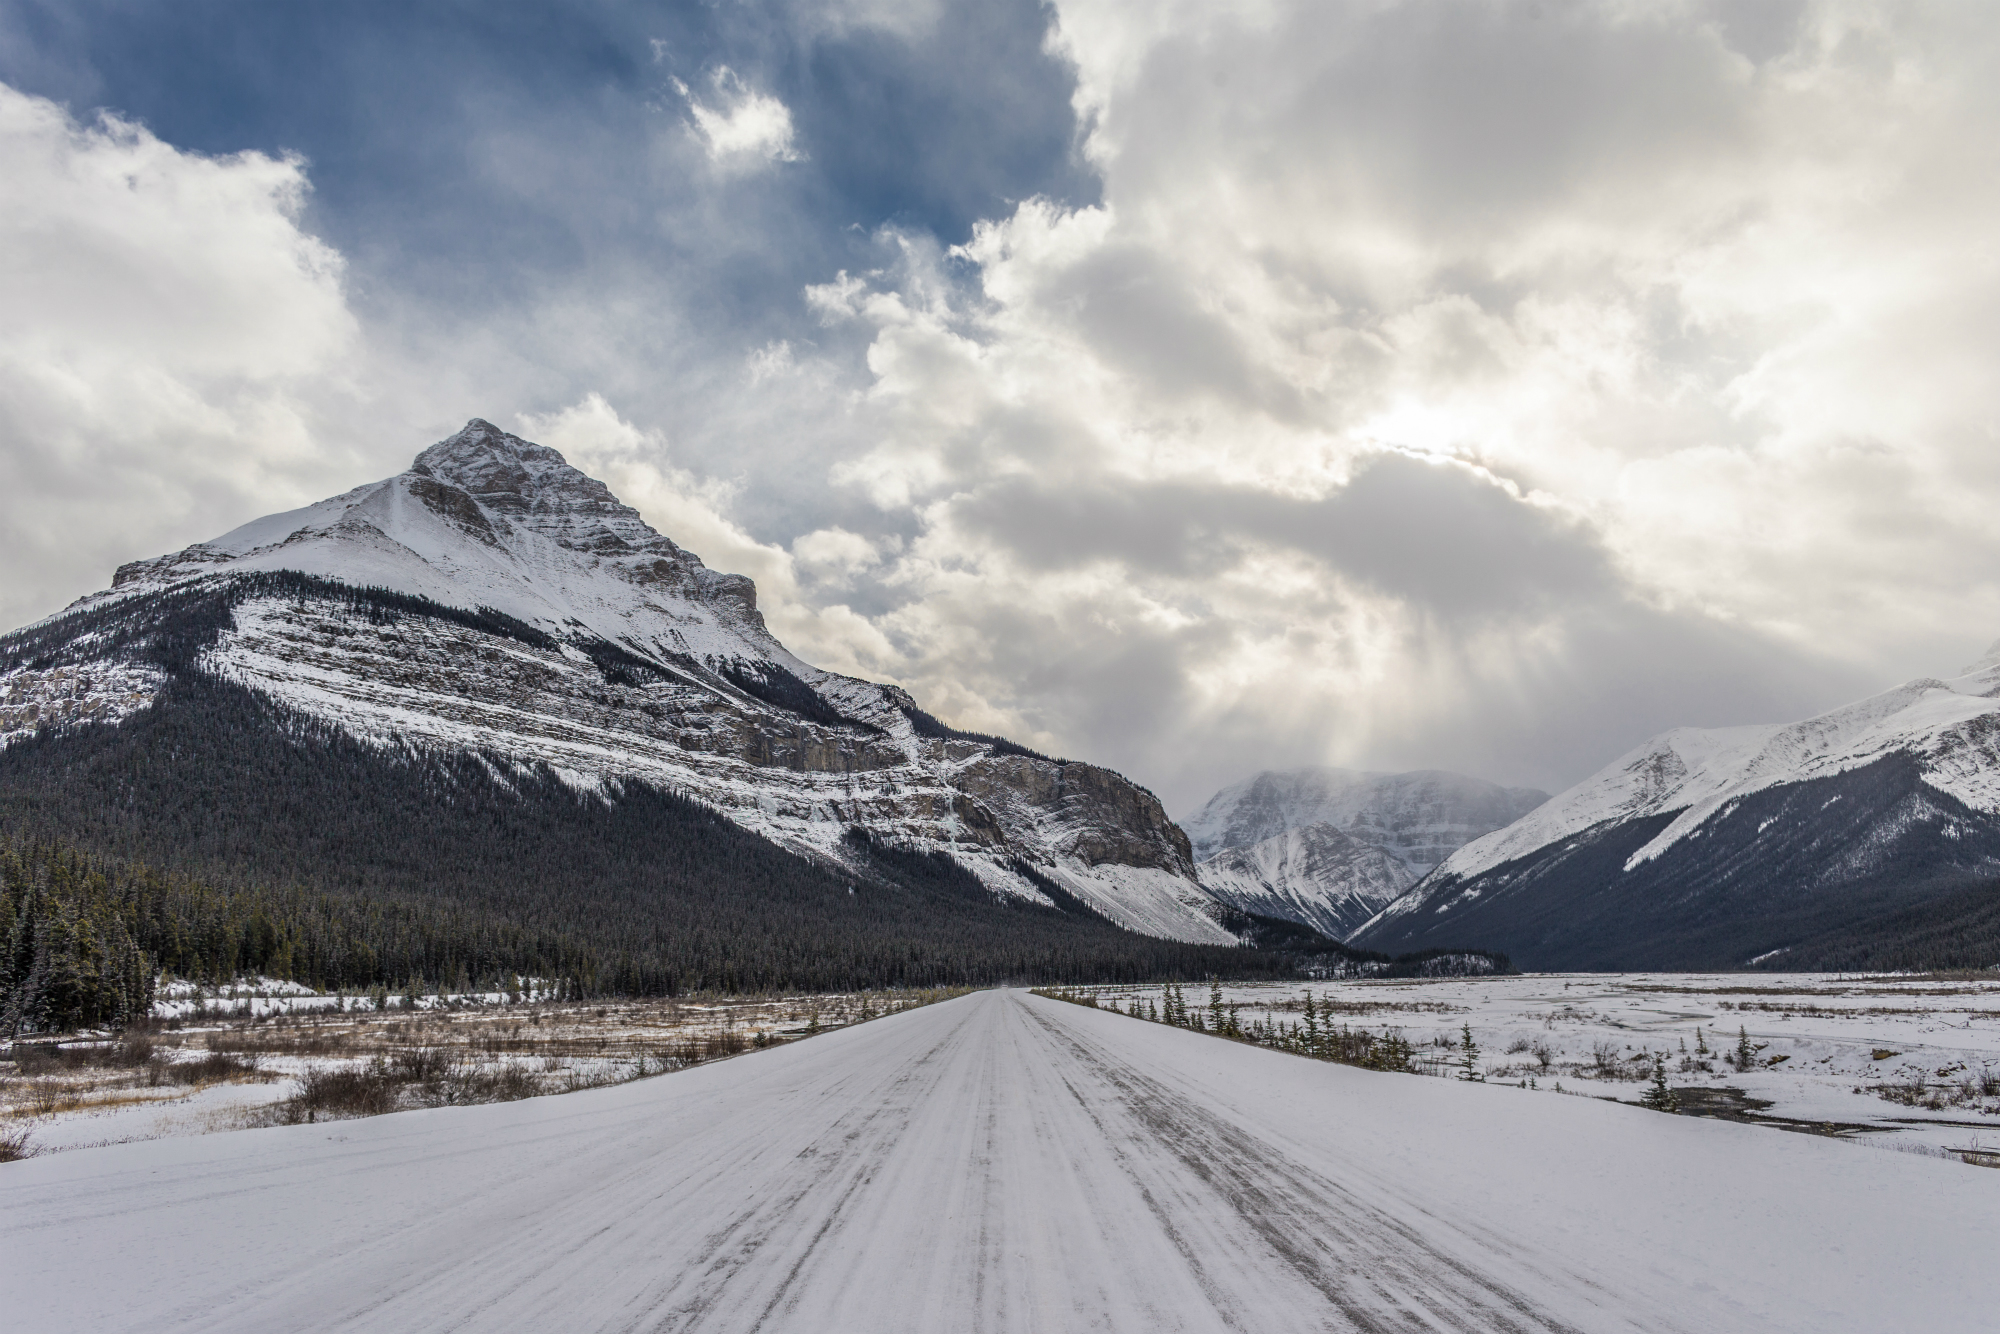 Columbia Ice Fields in Canada